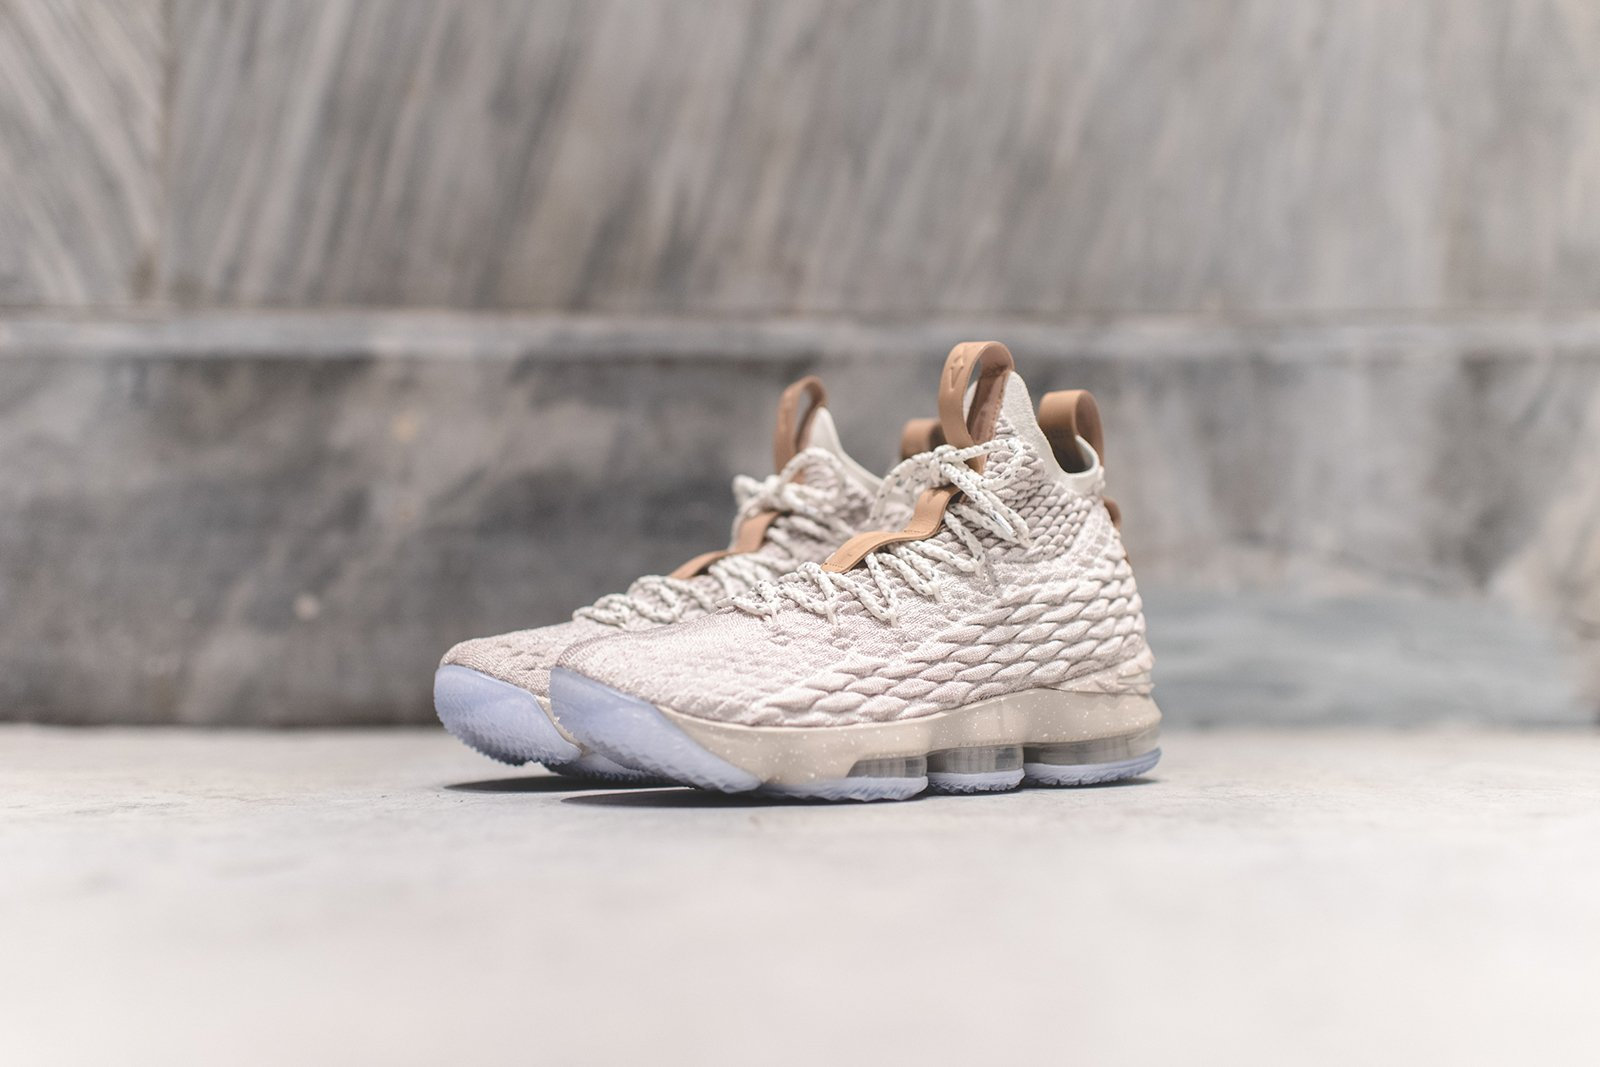 4d52c66d344 The Nike LeBron 15 Championed By The King Himself Dubs This Pair As His  Favourite Signature Model Yet - MASSES